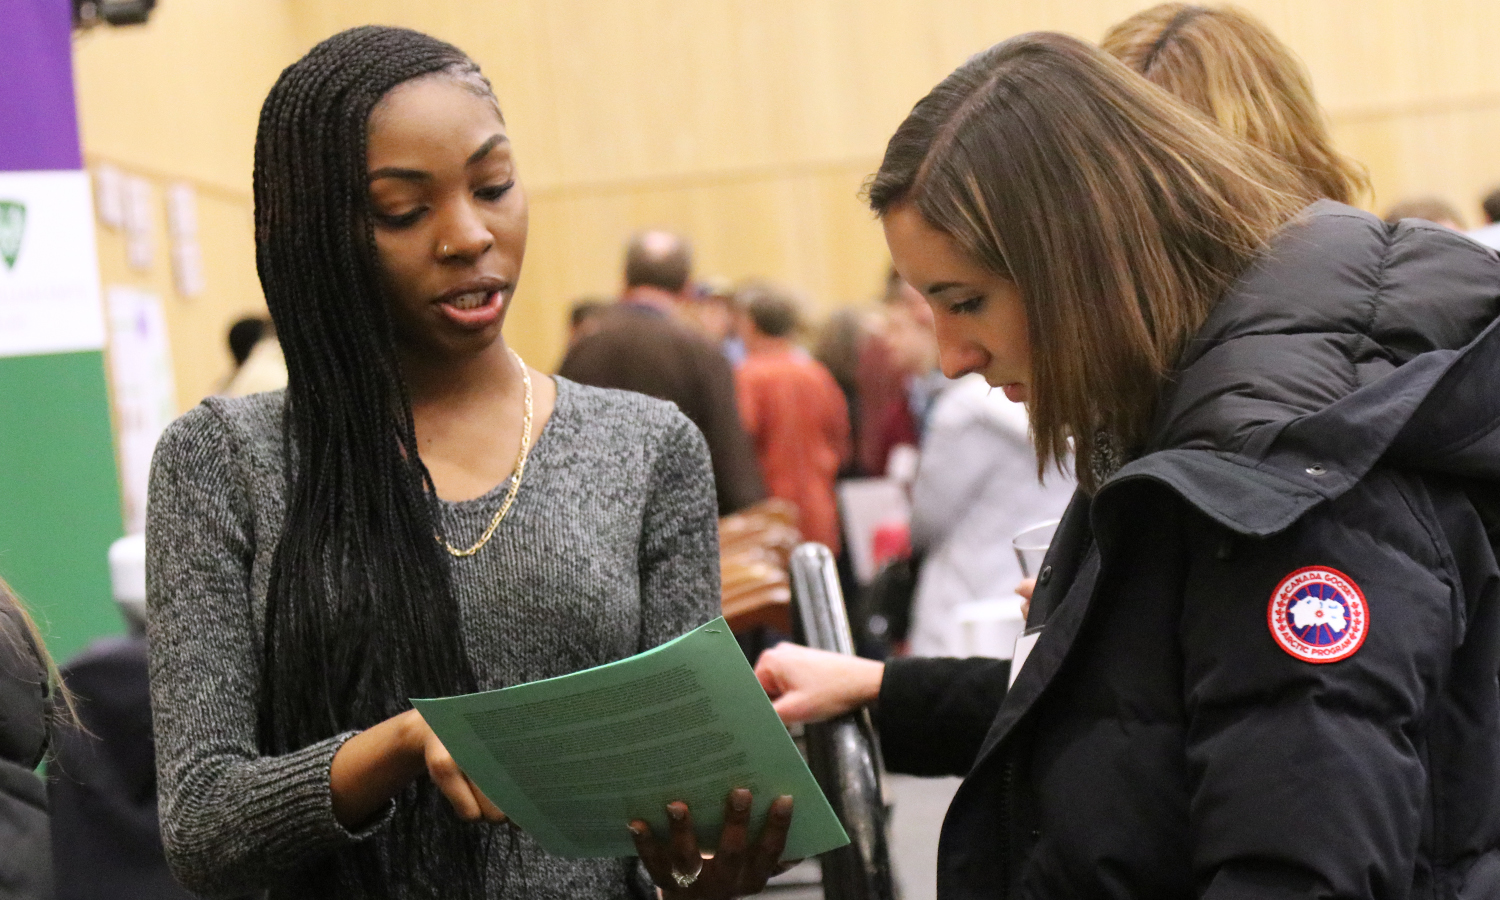 Canieshia Phillips '19 talks with a prospective student about majoring in Writing and Rhetoric as part of the academic fair during HWS Scholar Day.